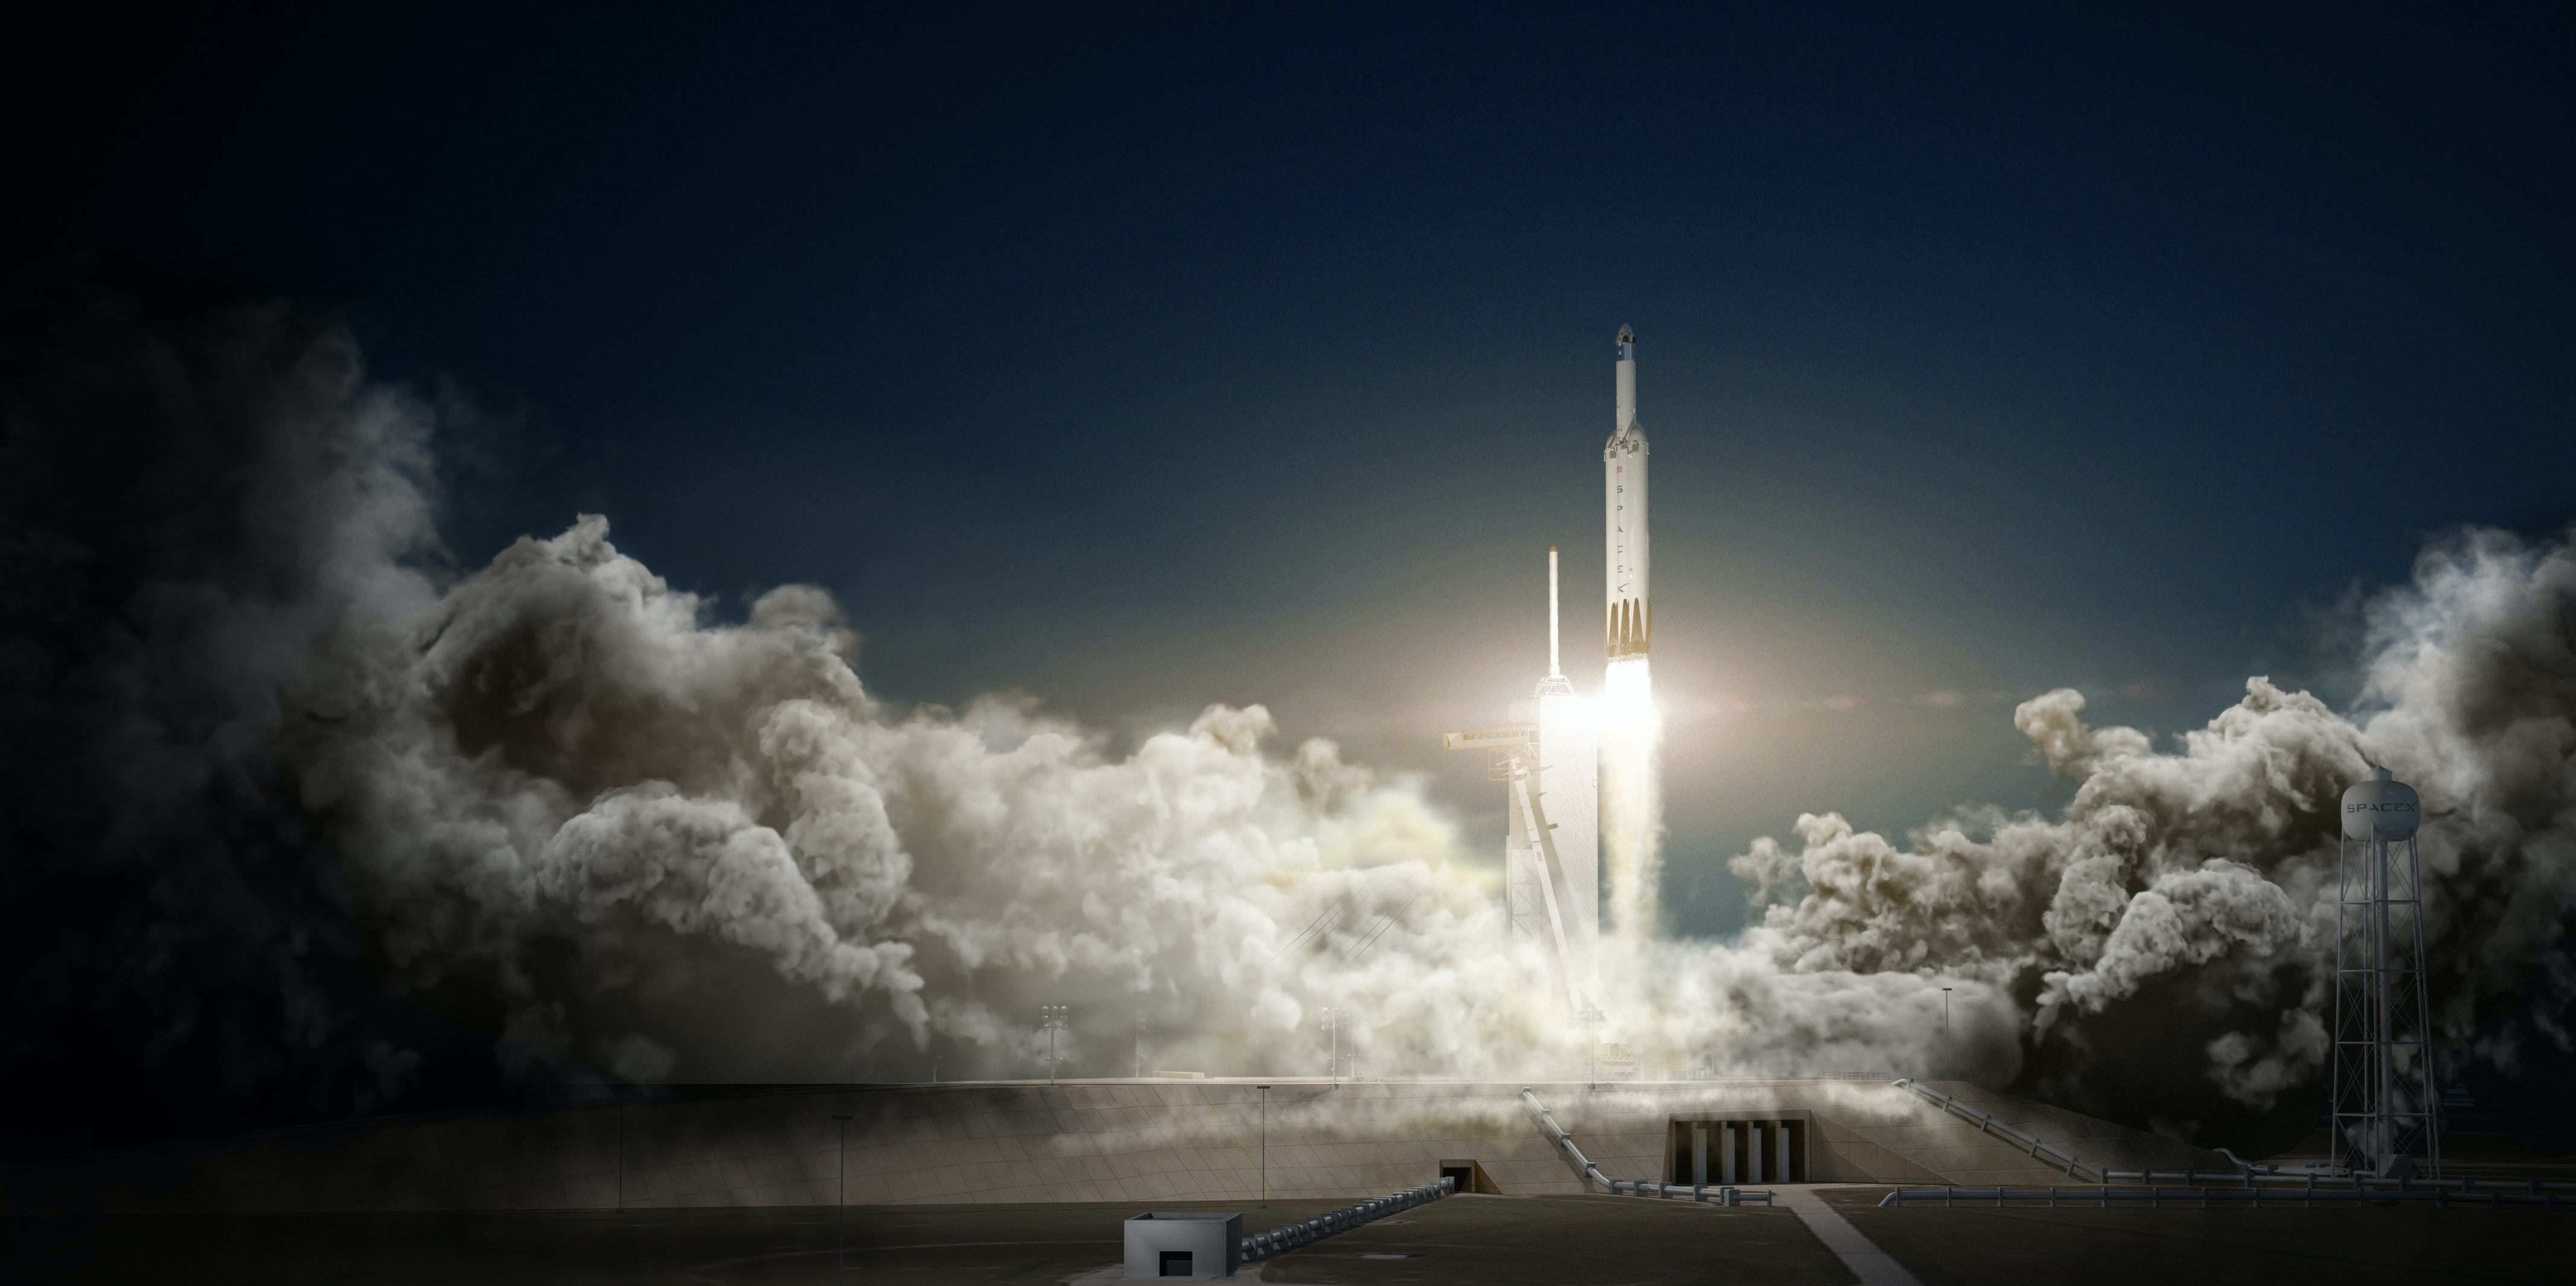 SpaceX's Falcon Heavy Test This Summer Just Got Even More Exciting